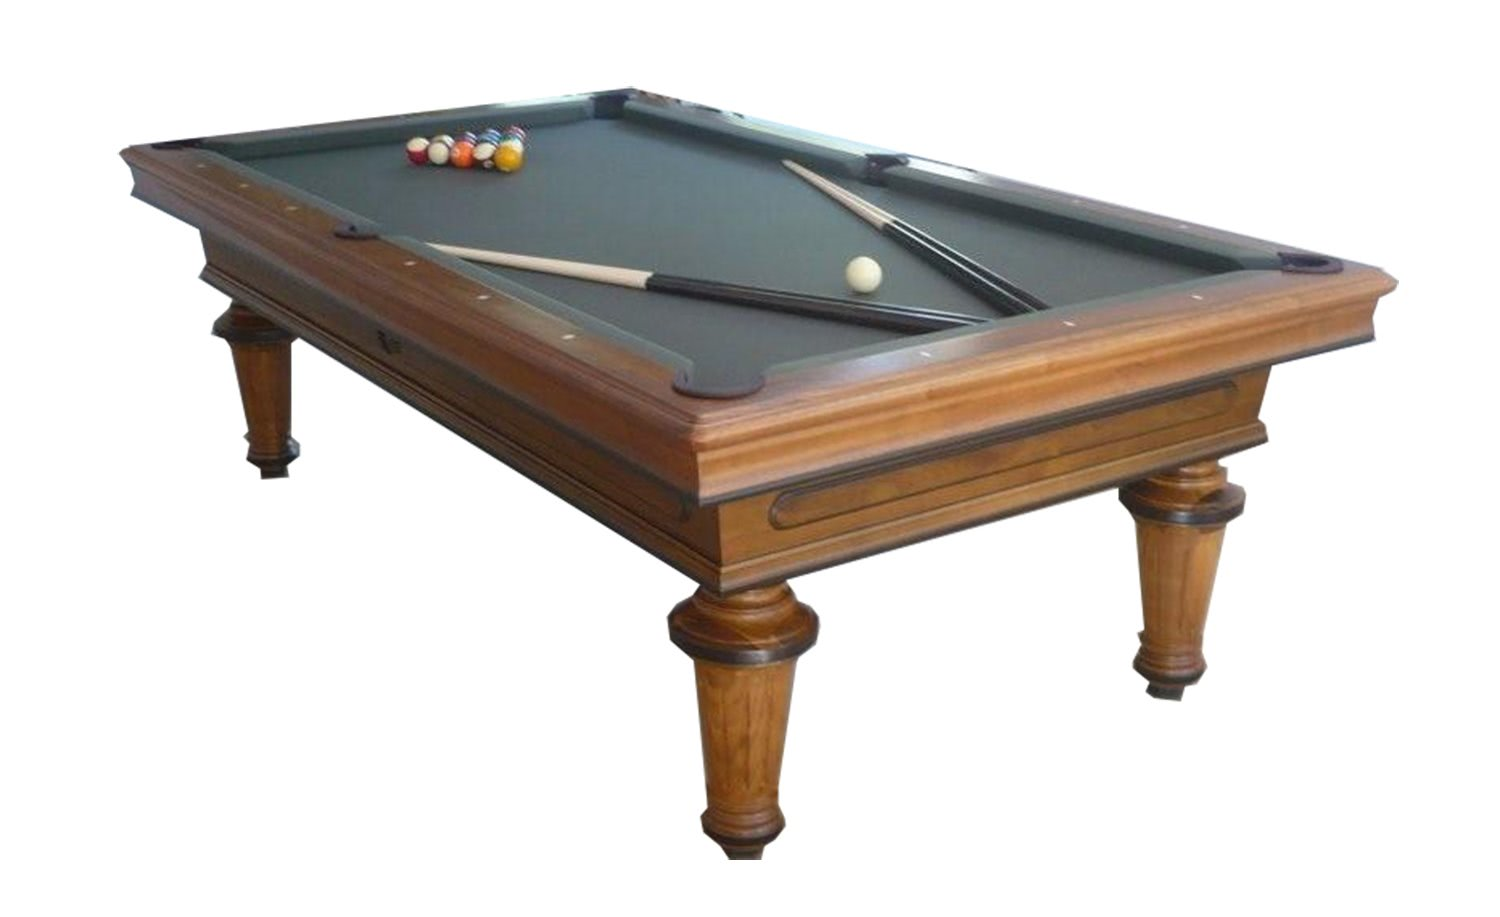 billard toulet emperor luxe pool table 7 ft 8 ft 9 ft. Black Bedroom Furniture Sets. Home Design Ideas